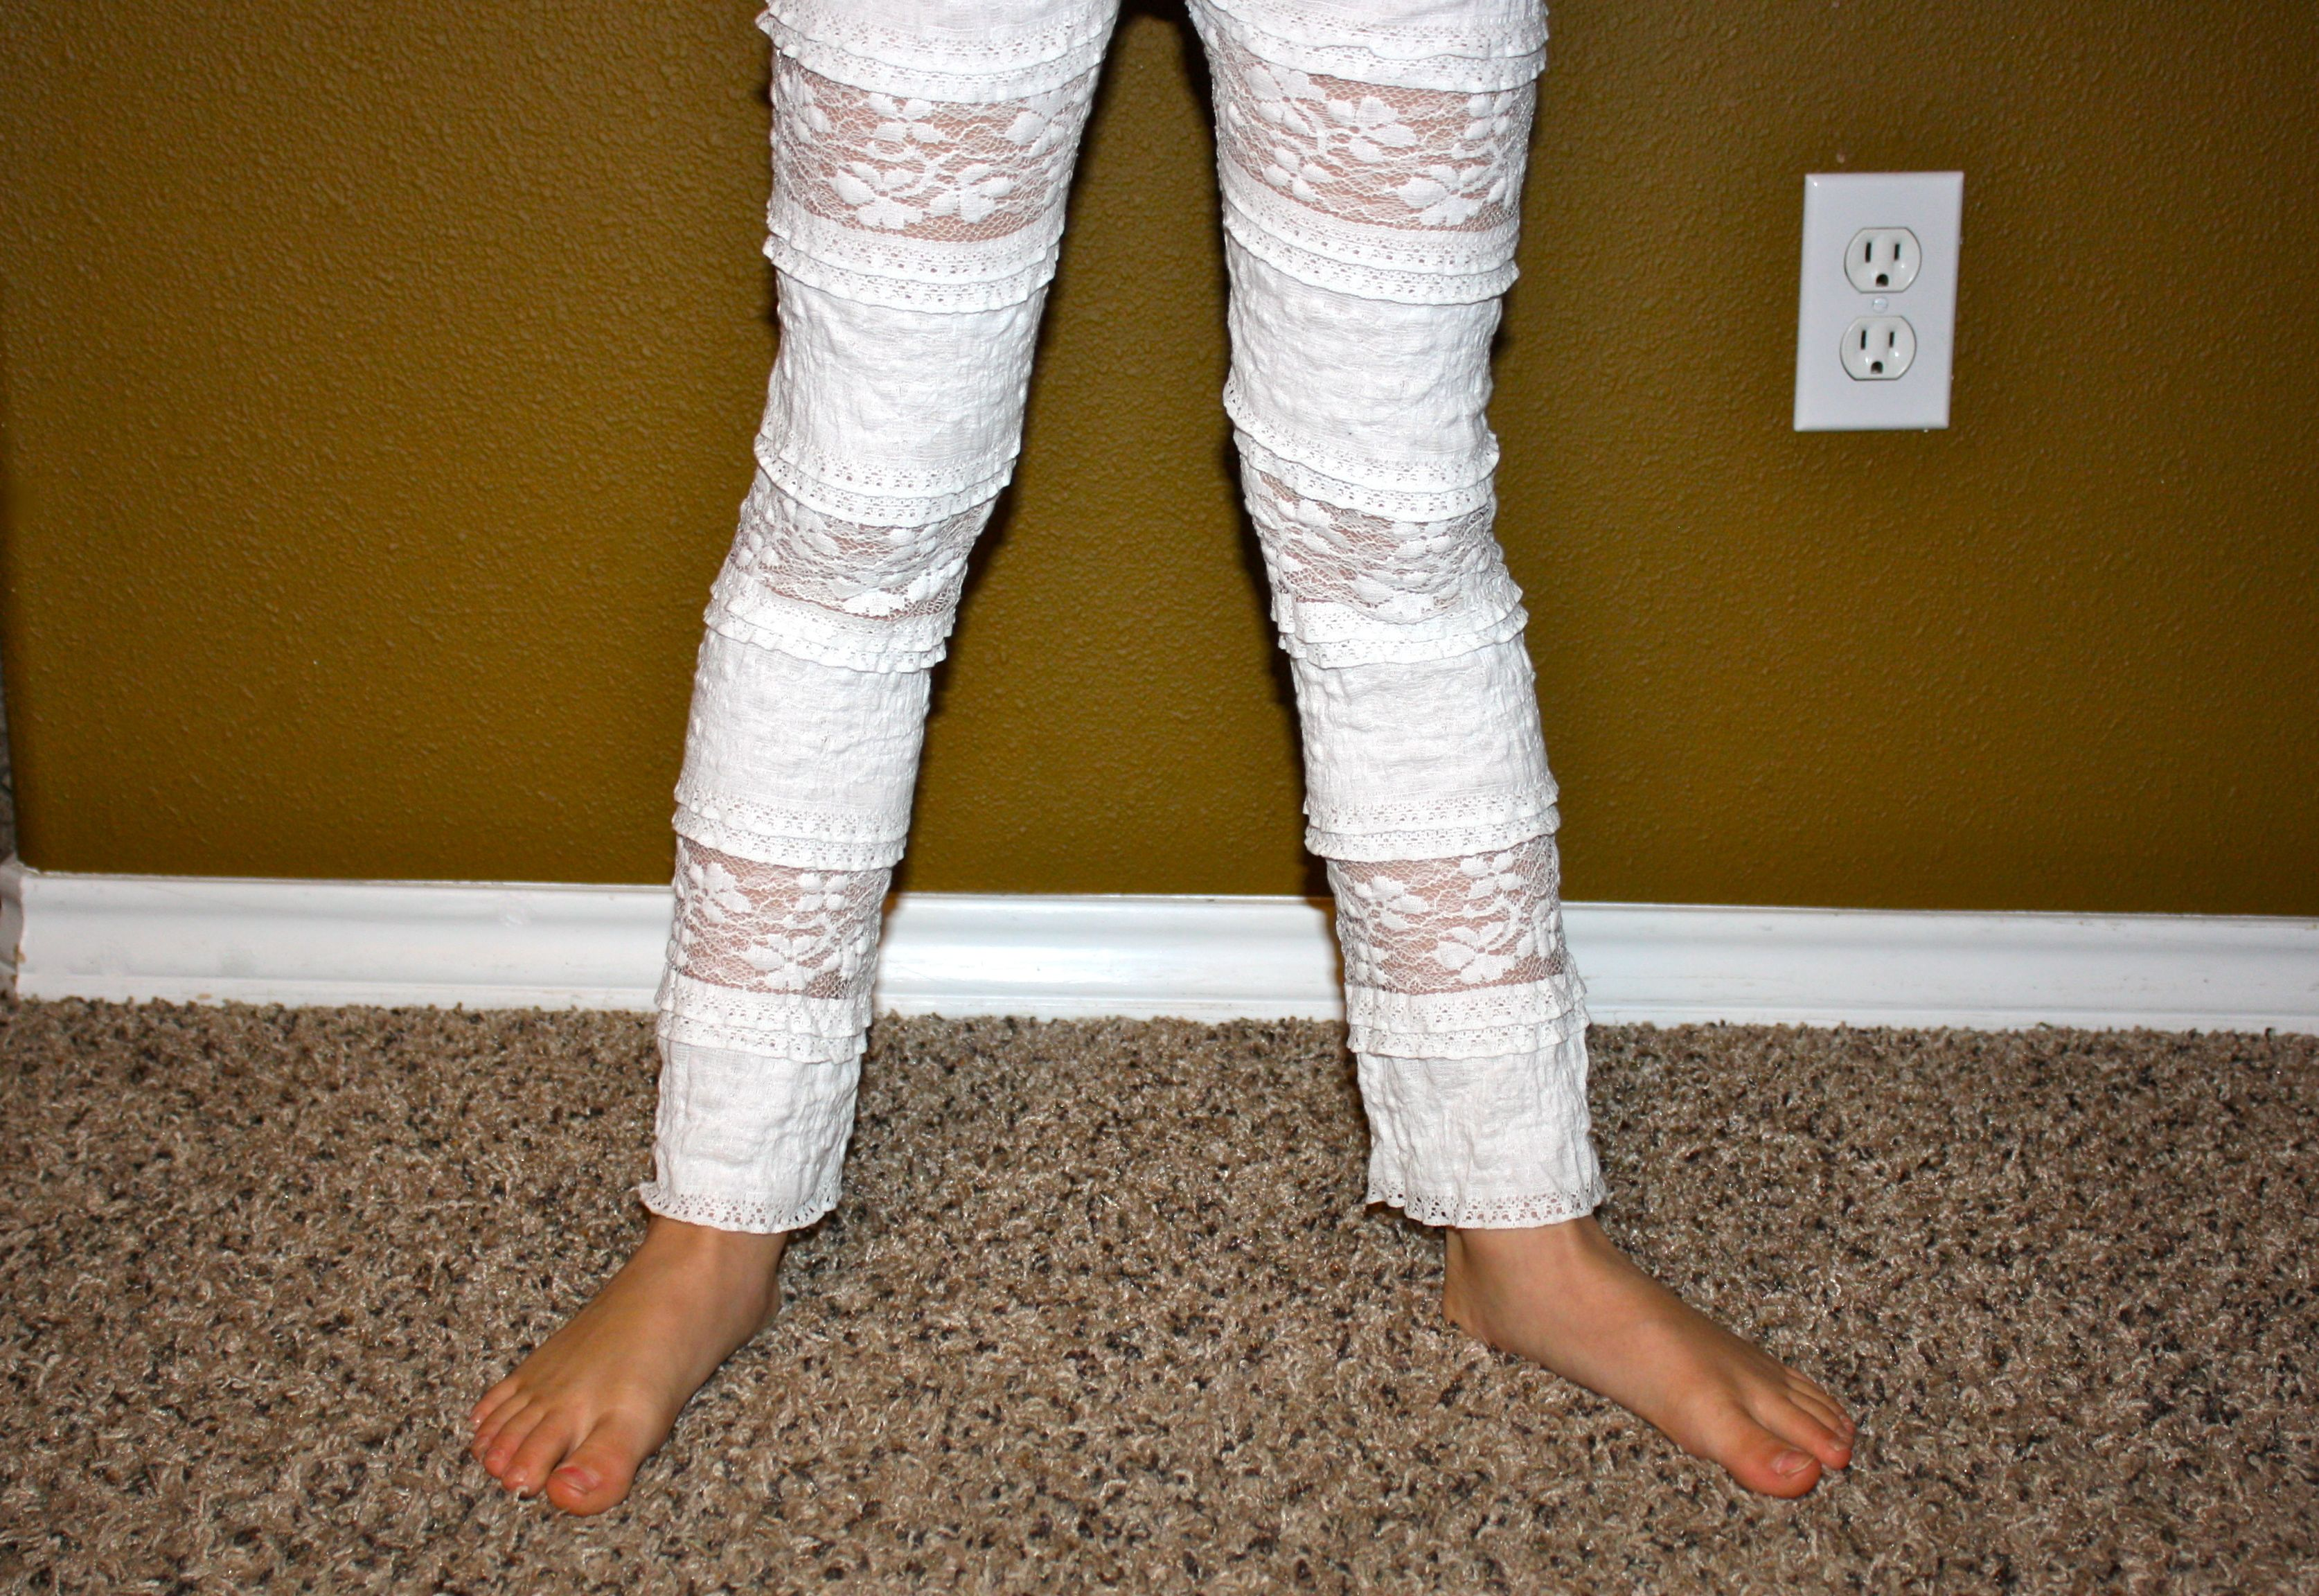 lace leggings - up to 70% off. Well, darn. This item just sold out. Select notify me & we'll tell you when it's back in stock.